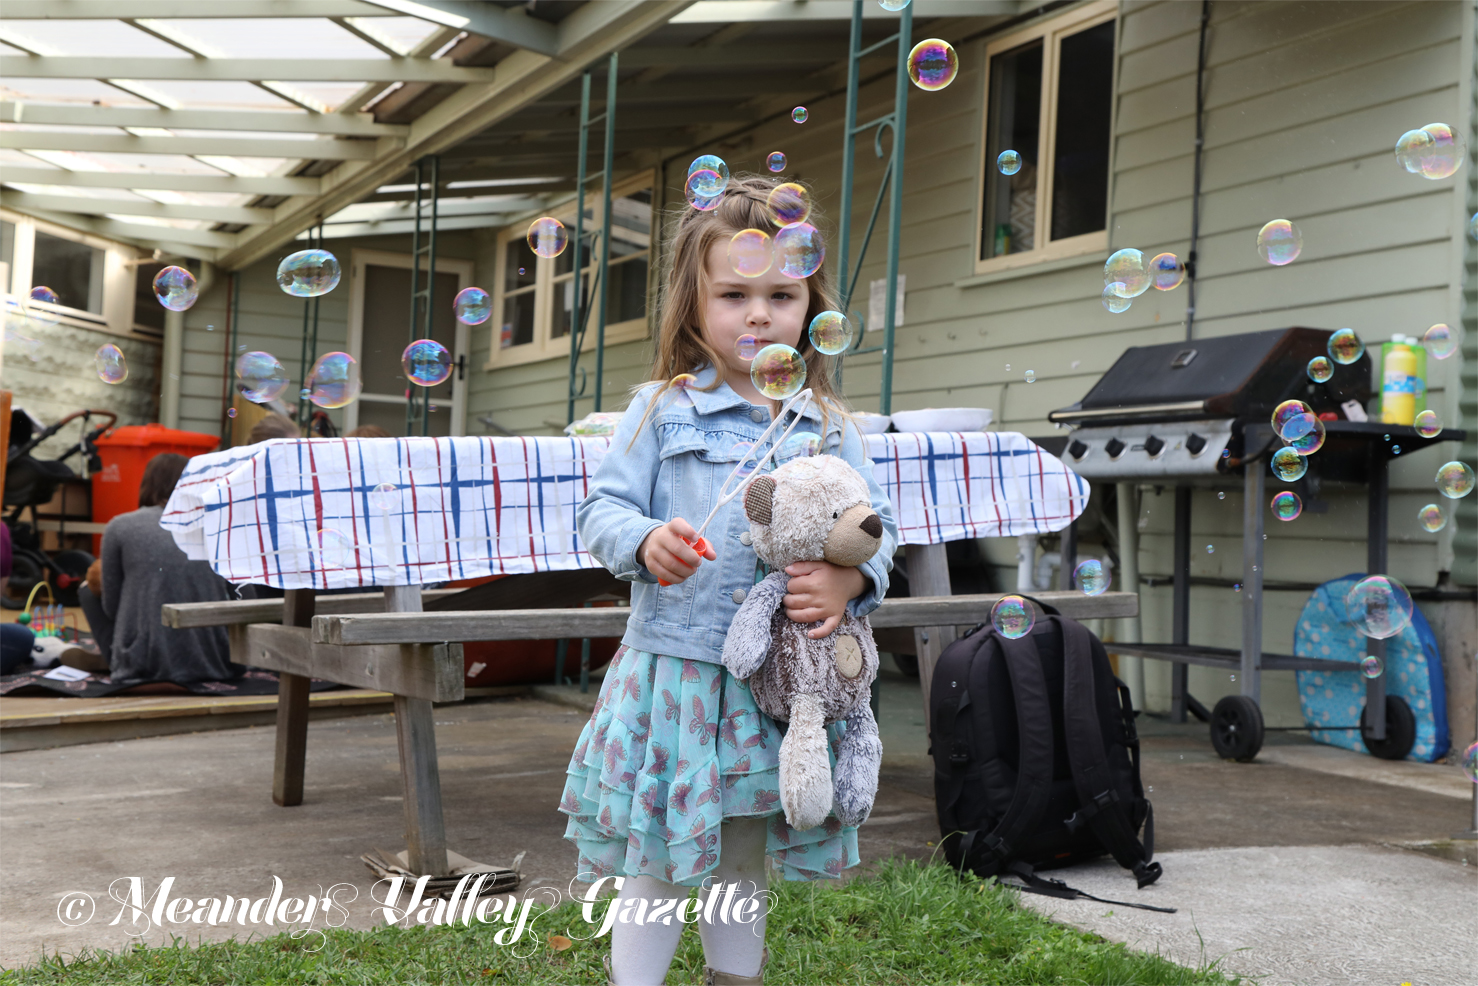 Three-year-old Lylah Ulbrich and her friend Ted, both from Biralee, are concentrating on getting that perfect bubble, at the Deloraine House Teddy Bears' Picnic.  Photo by Mike Moores